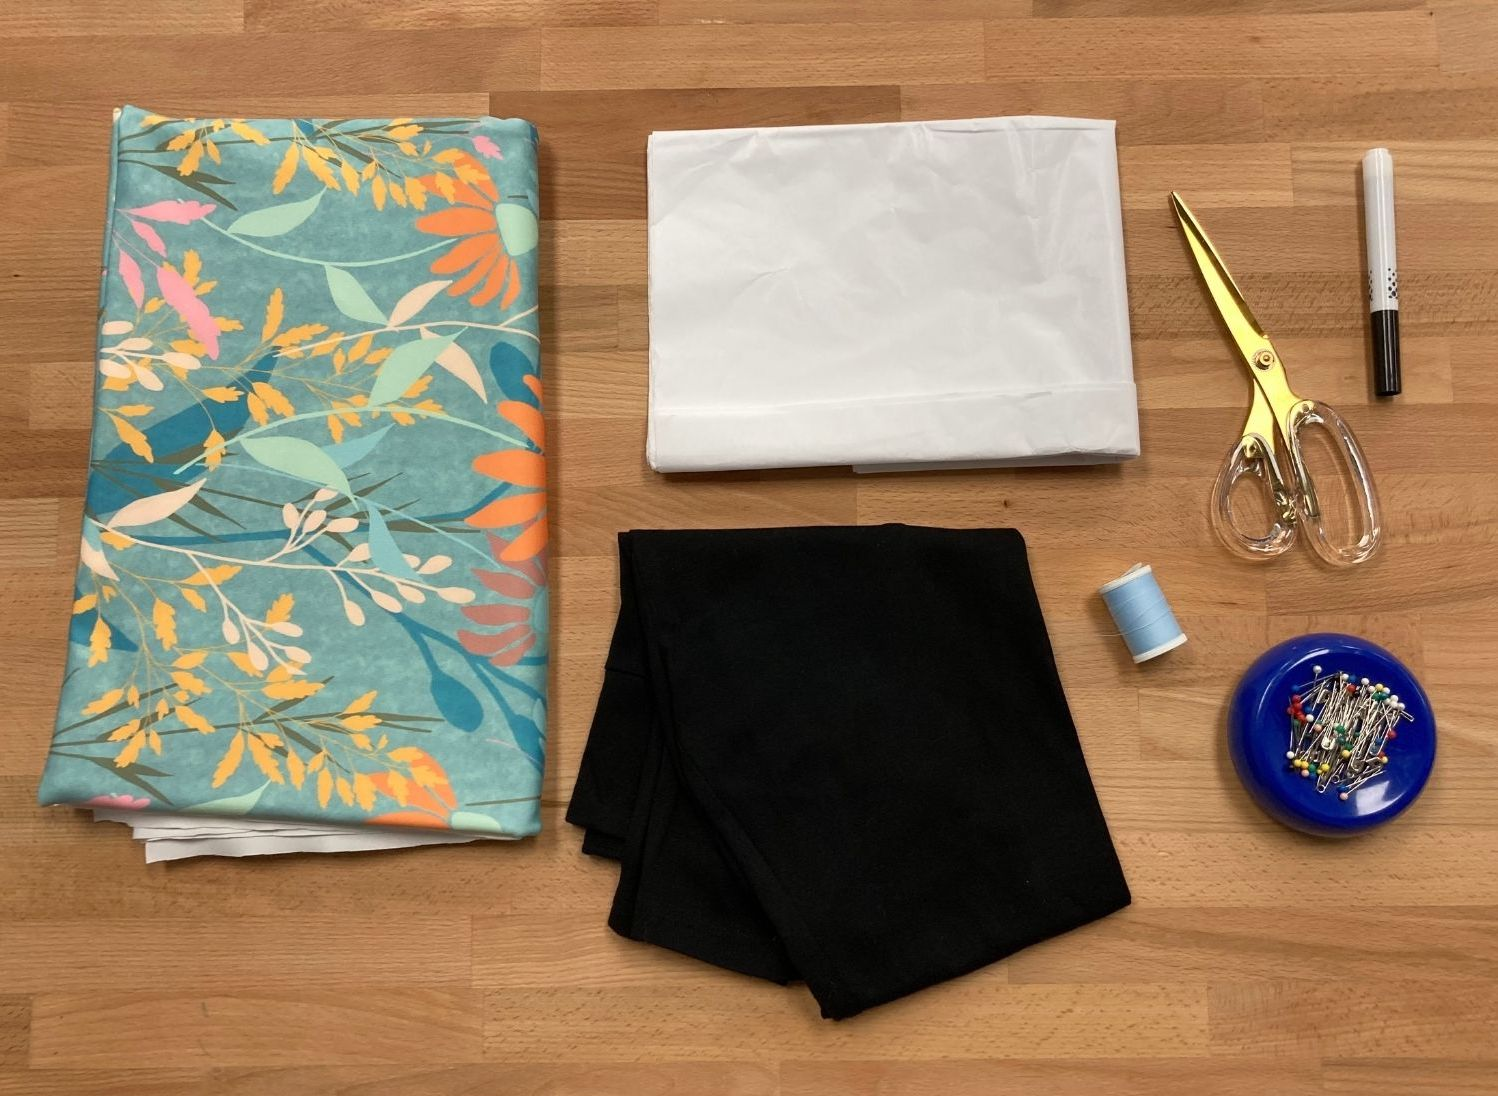 Supplies for leggings laying on table: Fabric, pattern paper, leggings, scissors, marker, thread and pins